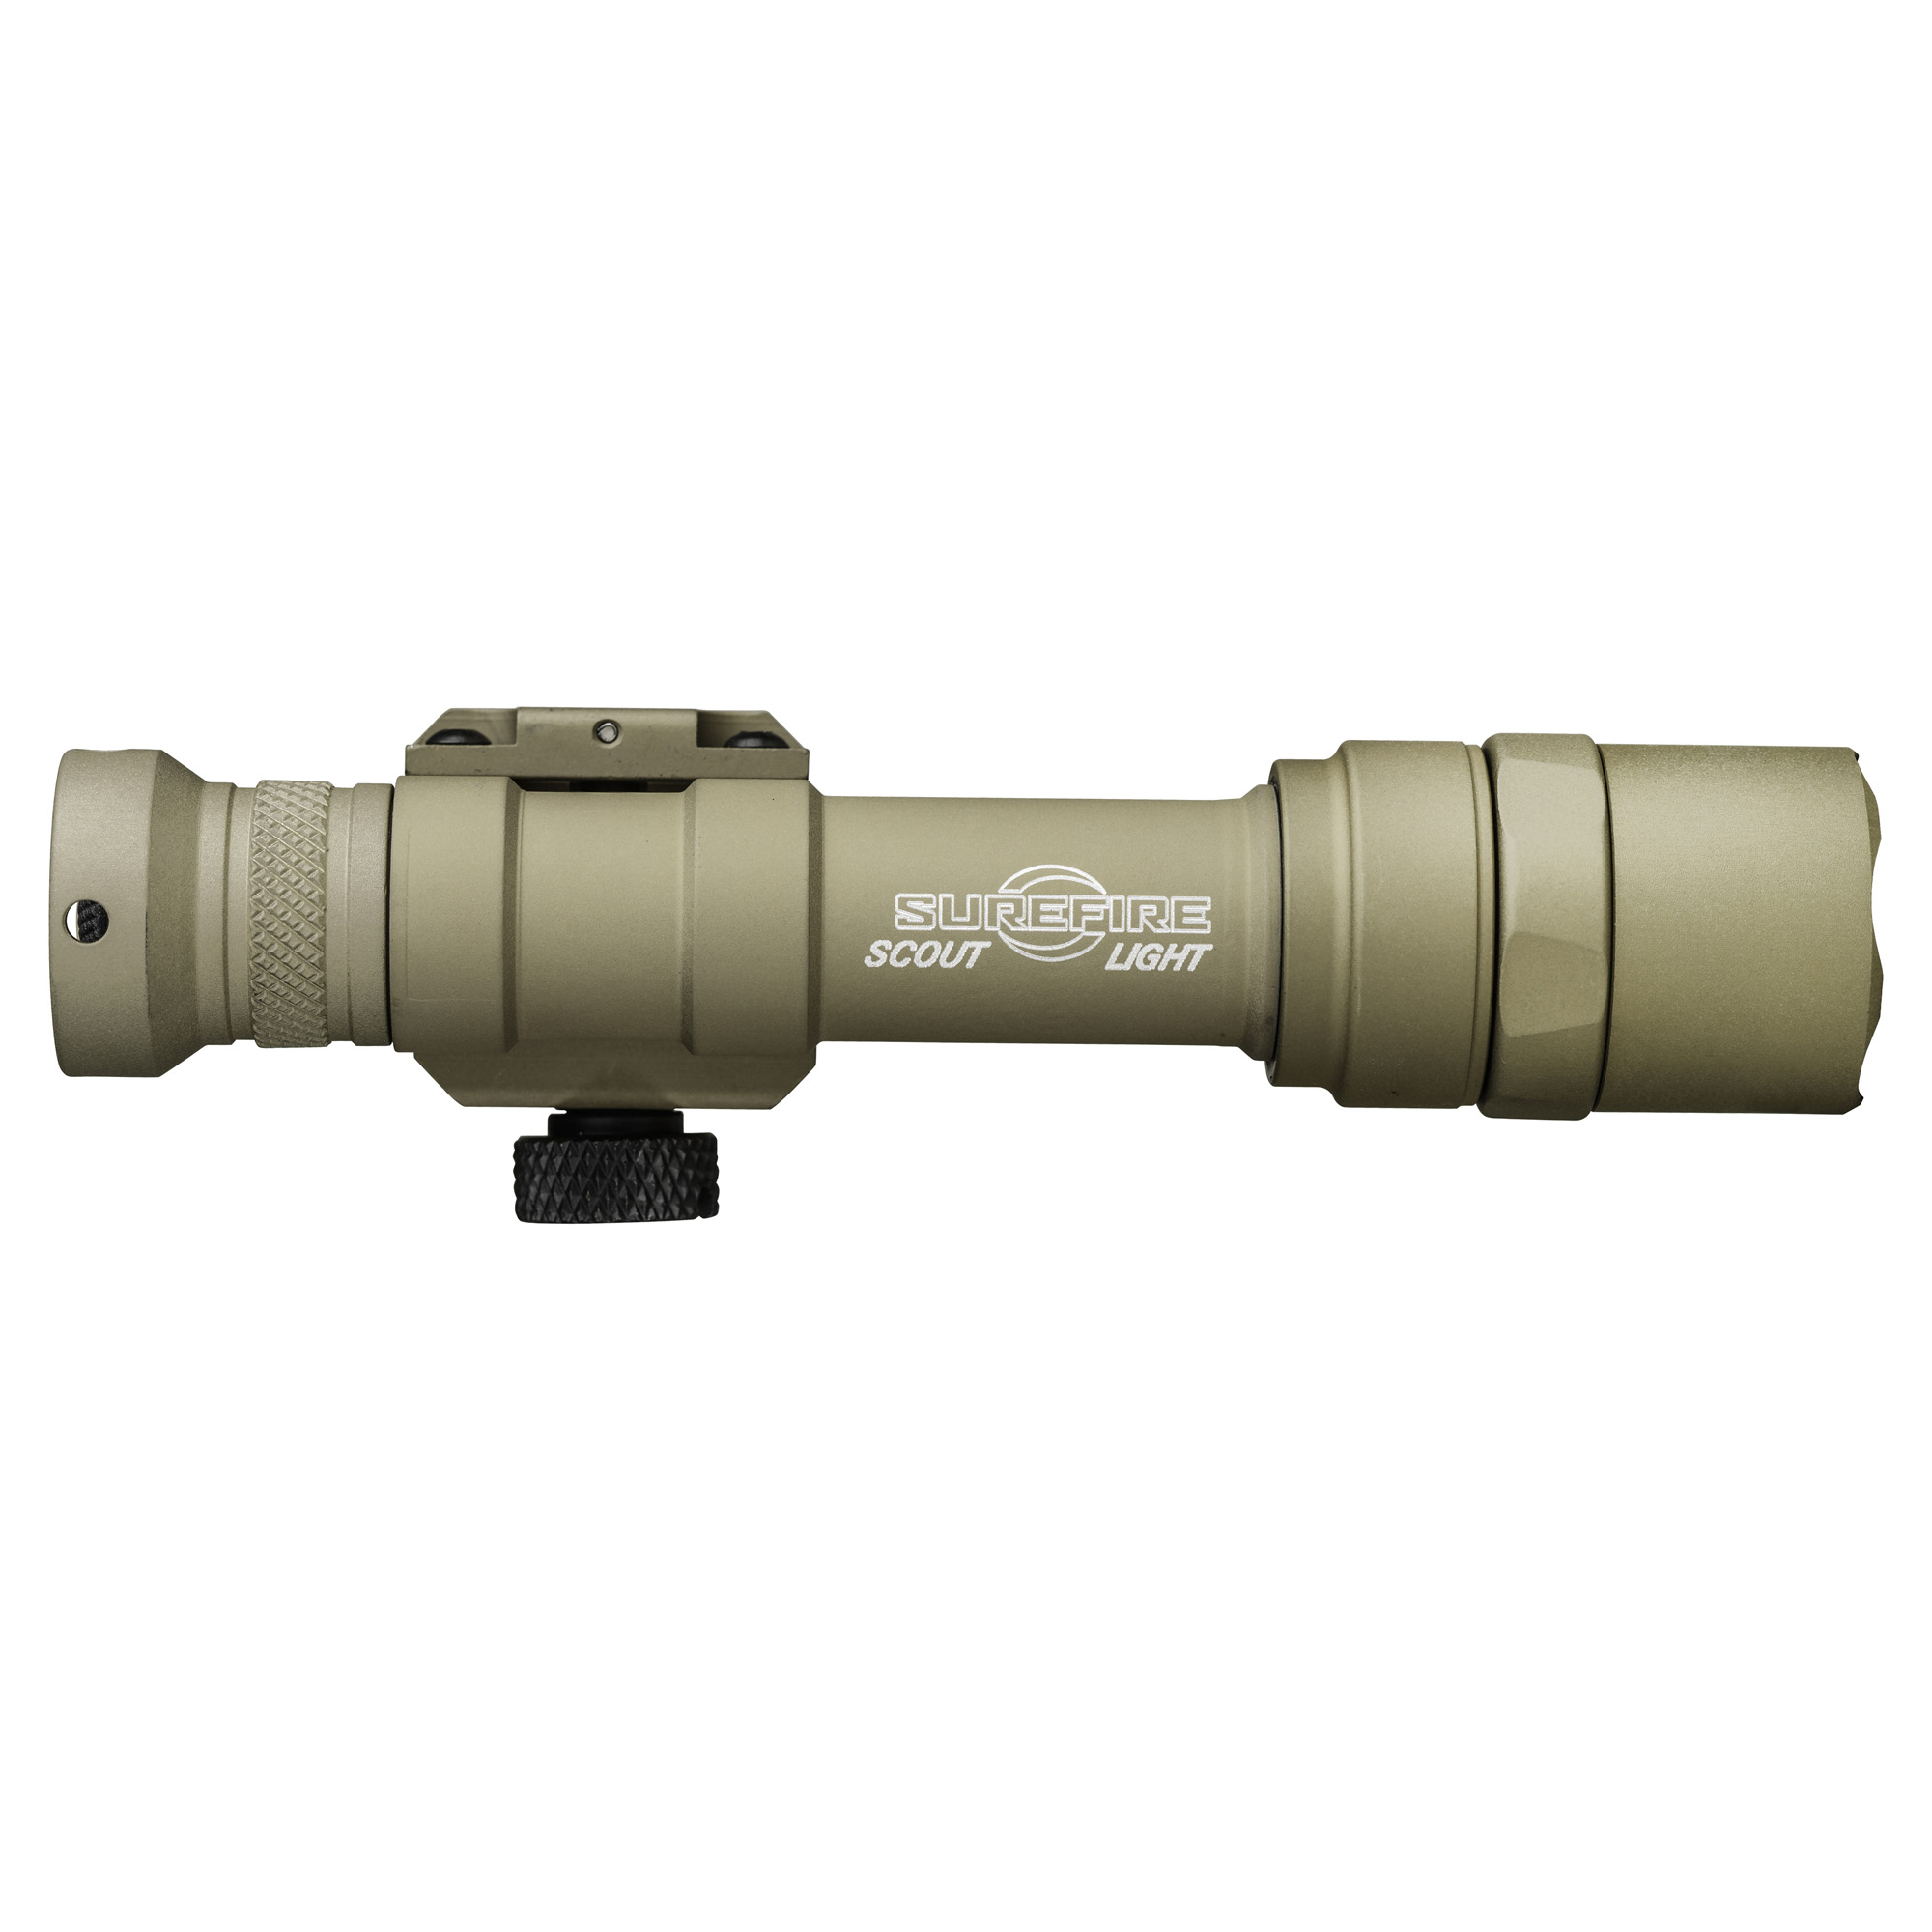 """The M600U Scout Light is a lightweight Weapon Light featuring an ultra-high-output LED that delivers 1000 lumens of blinding white light. A proprietary TIR lens shapes the recoil-proof LED's light into a beam with plenty of reach but enough surround light to accommodate peripheral vision"""" making the M600U ideal for medium to longer-range applications. The rugged M600U attaches quickly and securely to any MIL-STD-1913 rail via its integral thumbscrew clamp. The light is activated by either clicking its pushbutton tail cap switch or by pressing the pressure-activated tape switch on select models. Constructed of lightweight aerospace aluminum"""" Mil-Spec Hard Anodized finish"""" and O-ring sealed to keep out the elements"""" the tough M600U will endure combat-like conditions without any sacrifice in weapon maneuverability."""